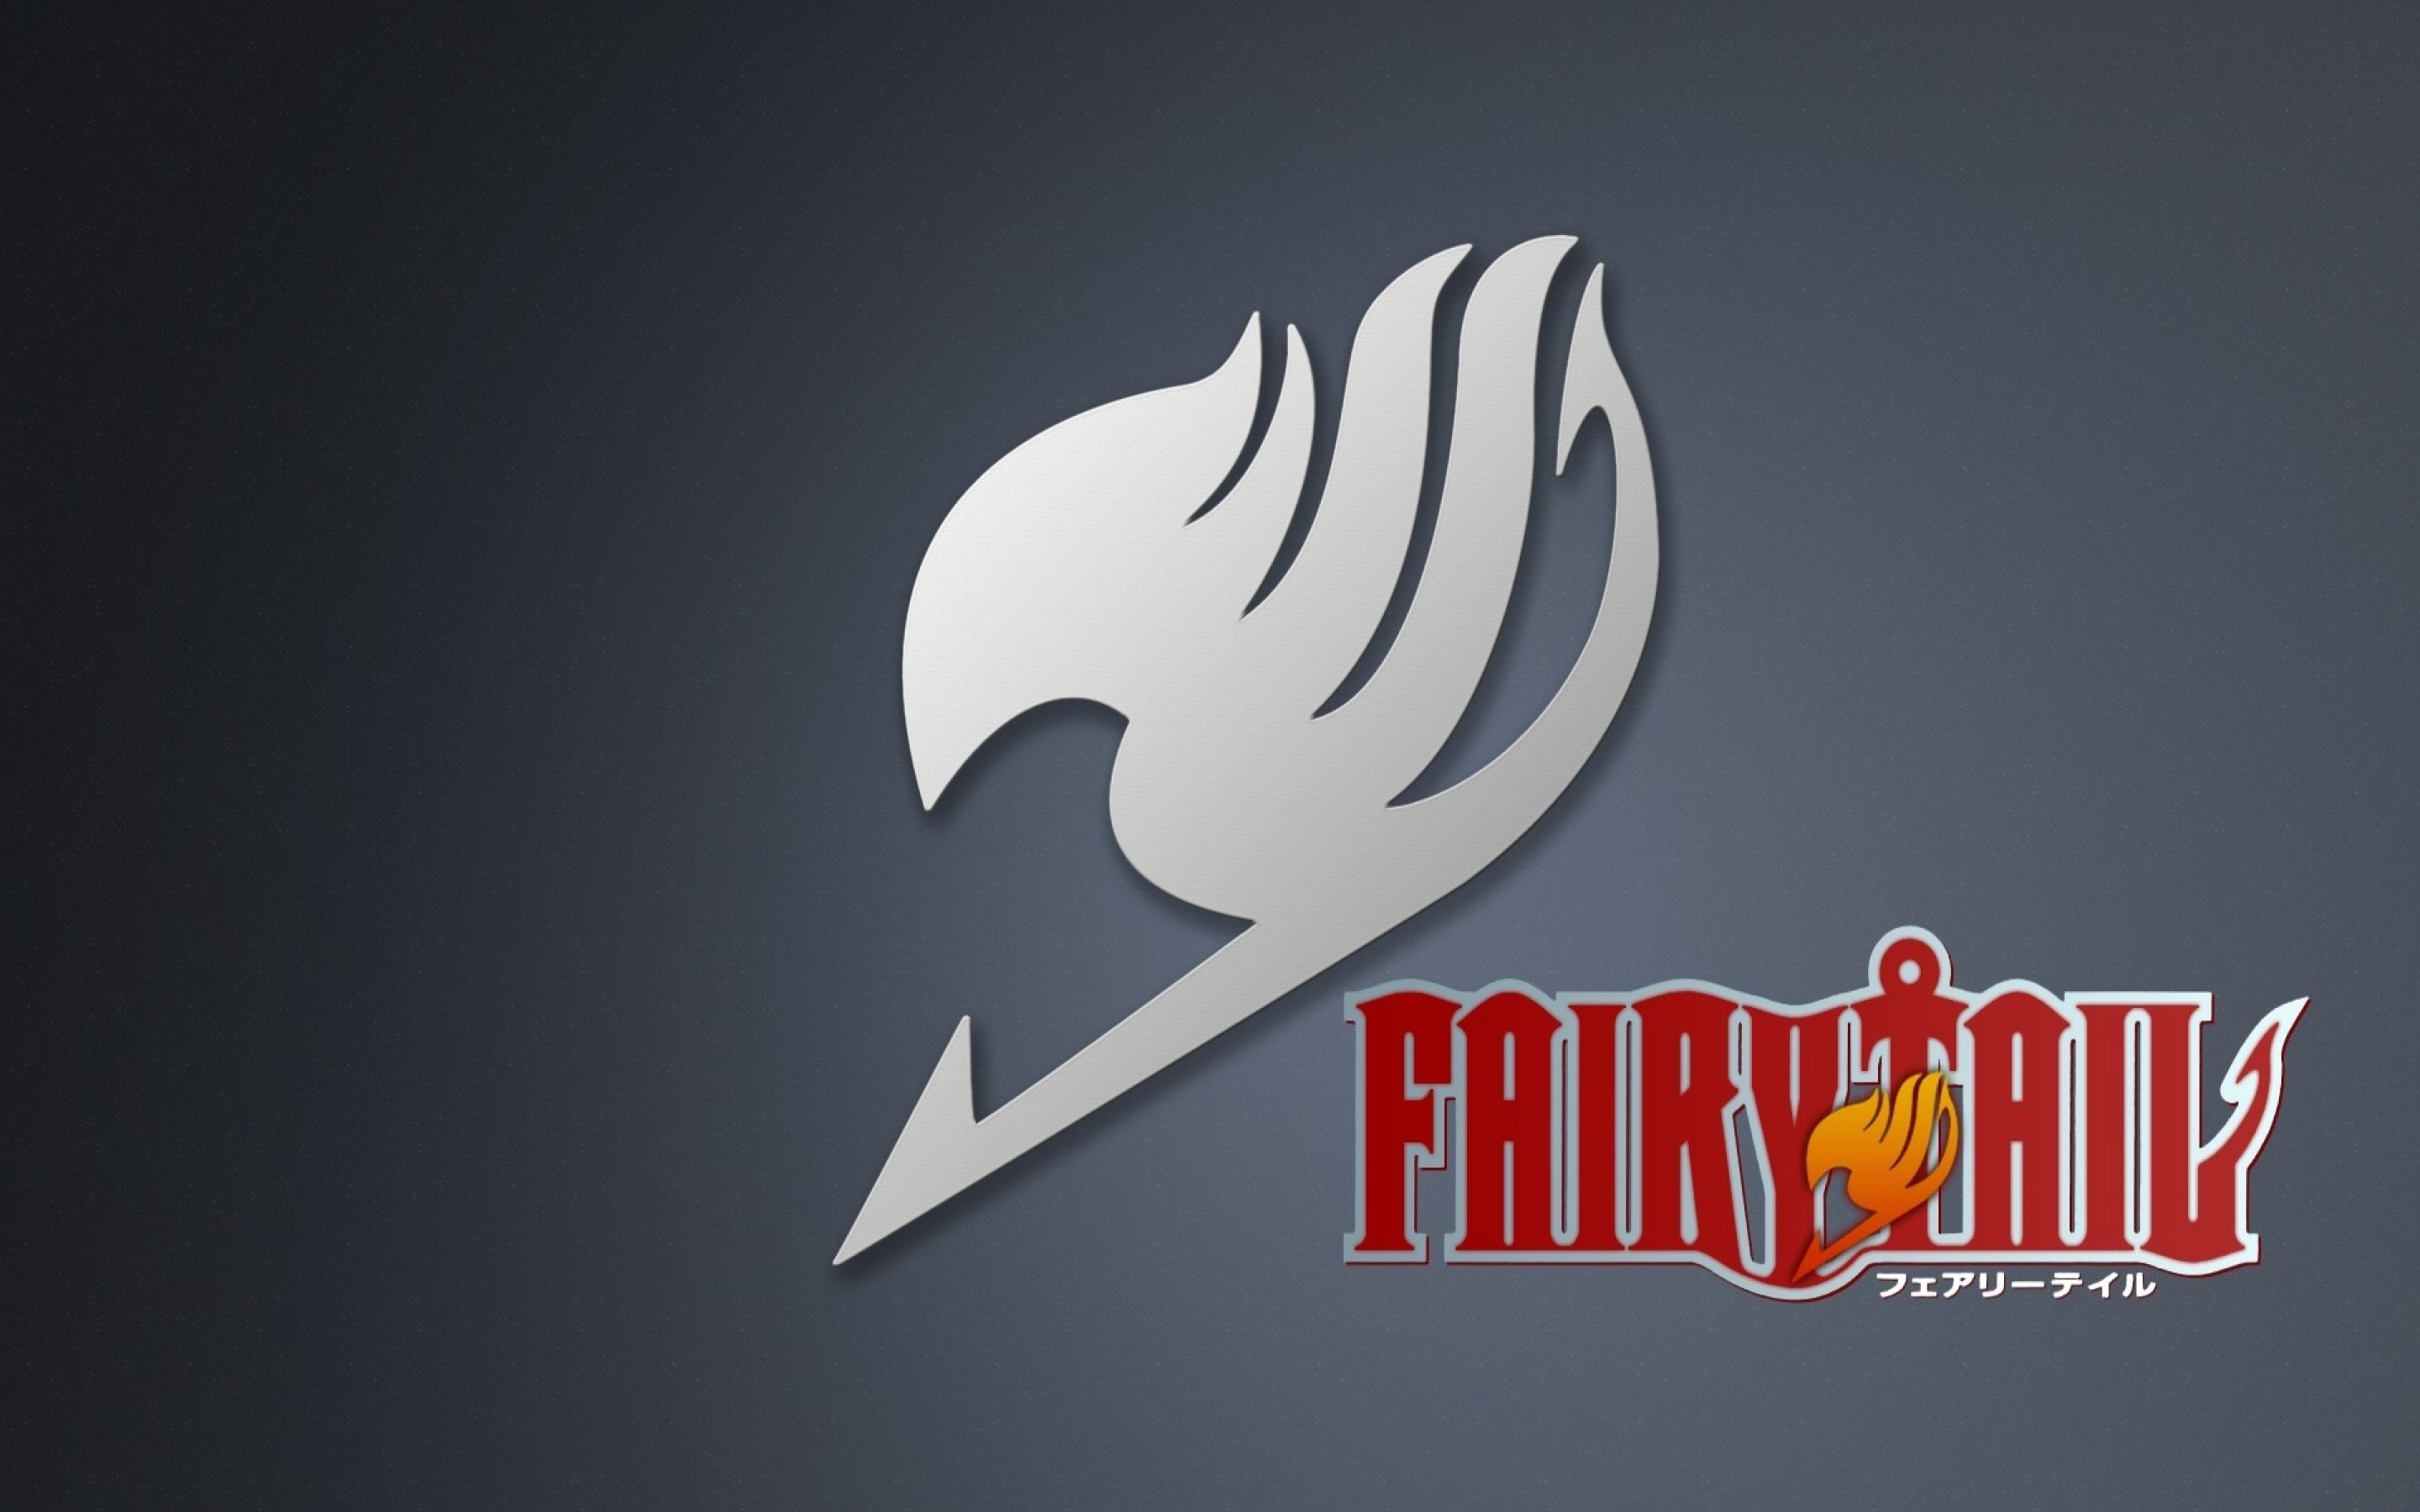 Fairy Tail Logo HD Wallpaper 1798 Frenziacom 2880x1800